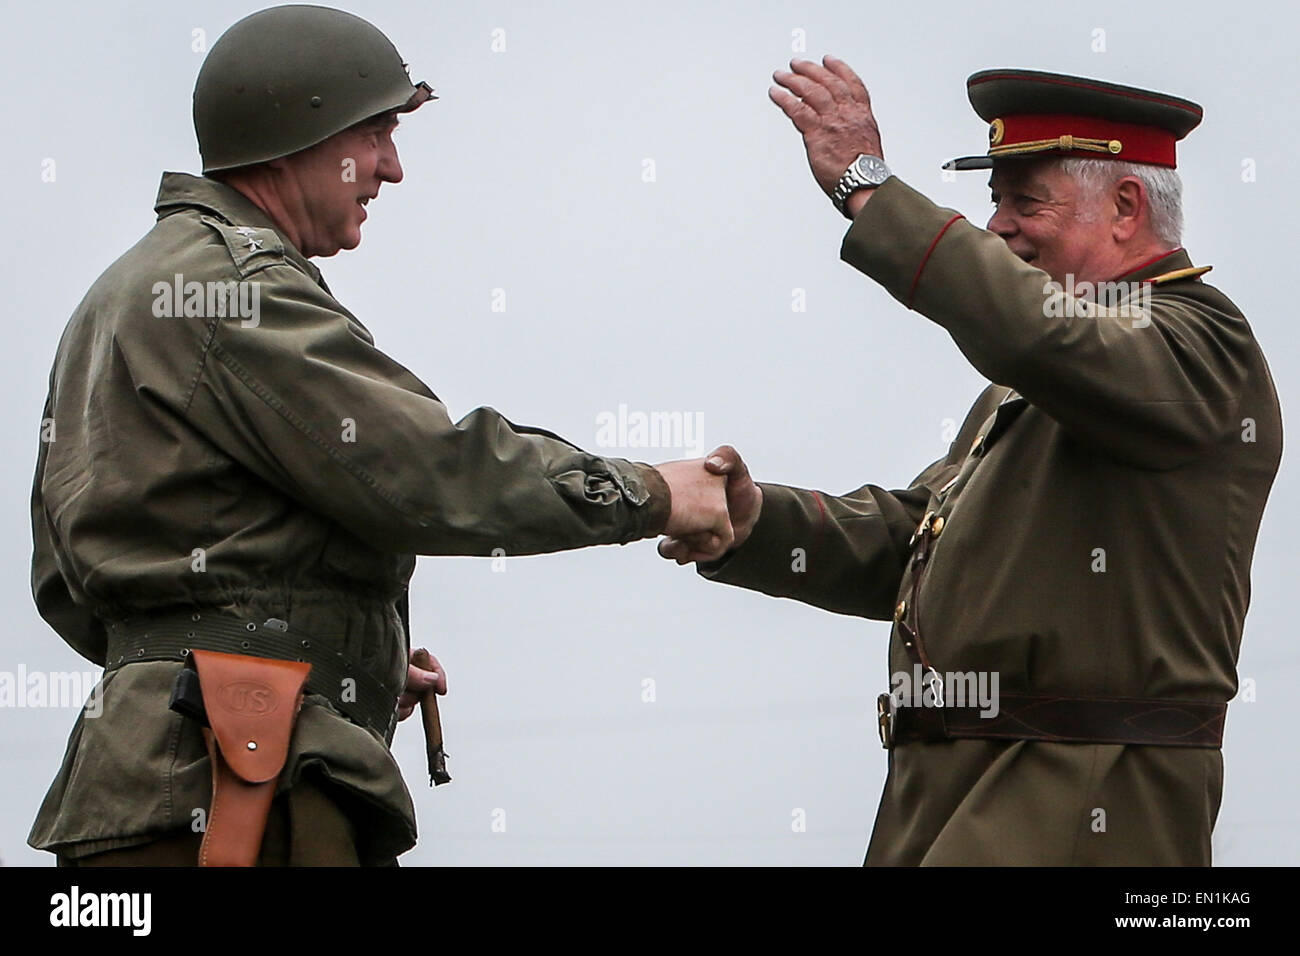 Torgau, Germany. 25th Apr, 2015. Amateur actors re-enact the famous meeting of Soviet and American soldiers during Stock Photo